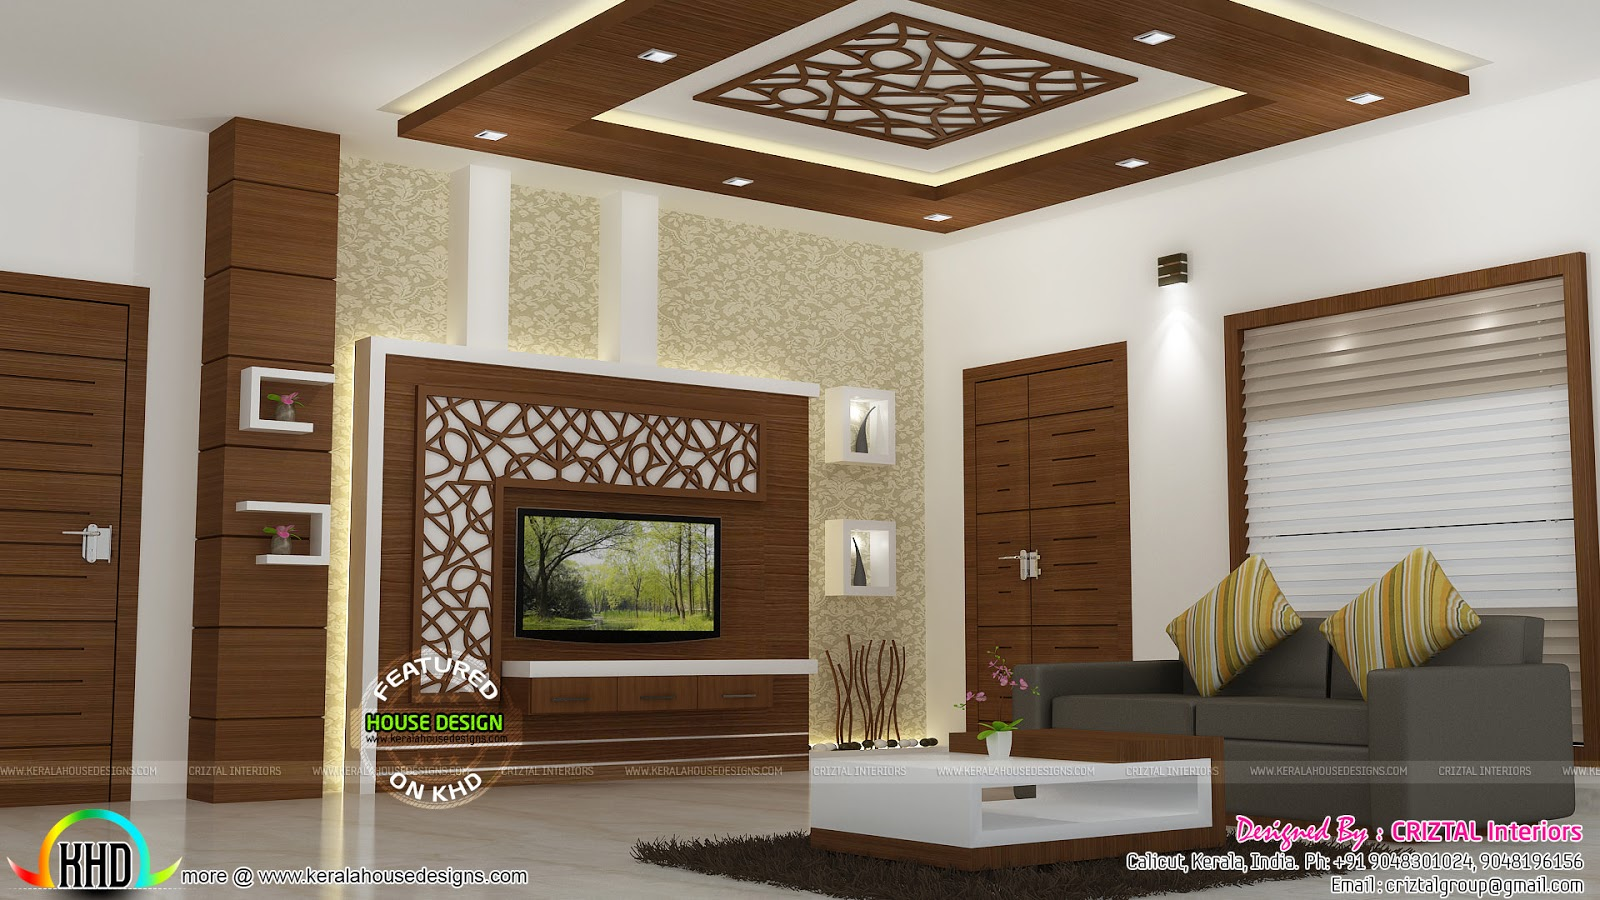 Bedroom dining hall and living interior kerala home design and floor plans for Living and dining hall interior design